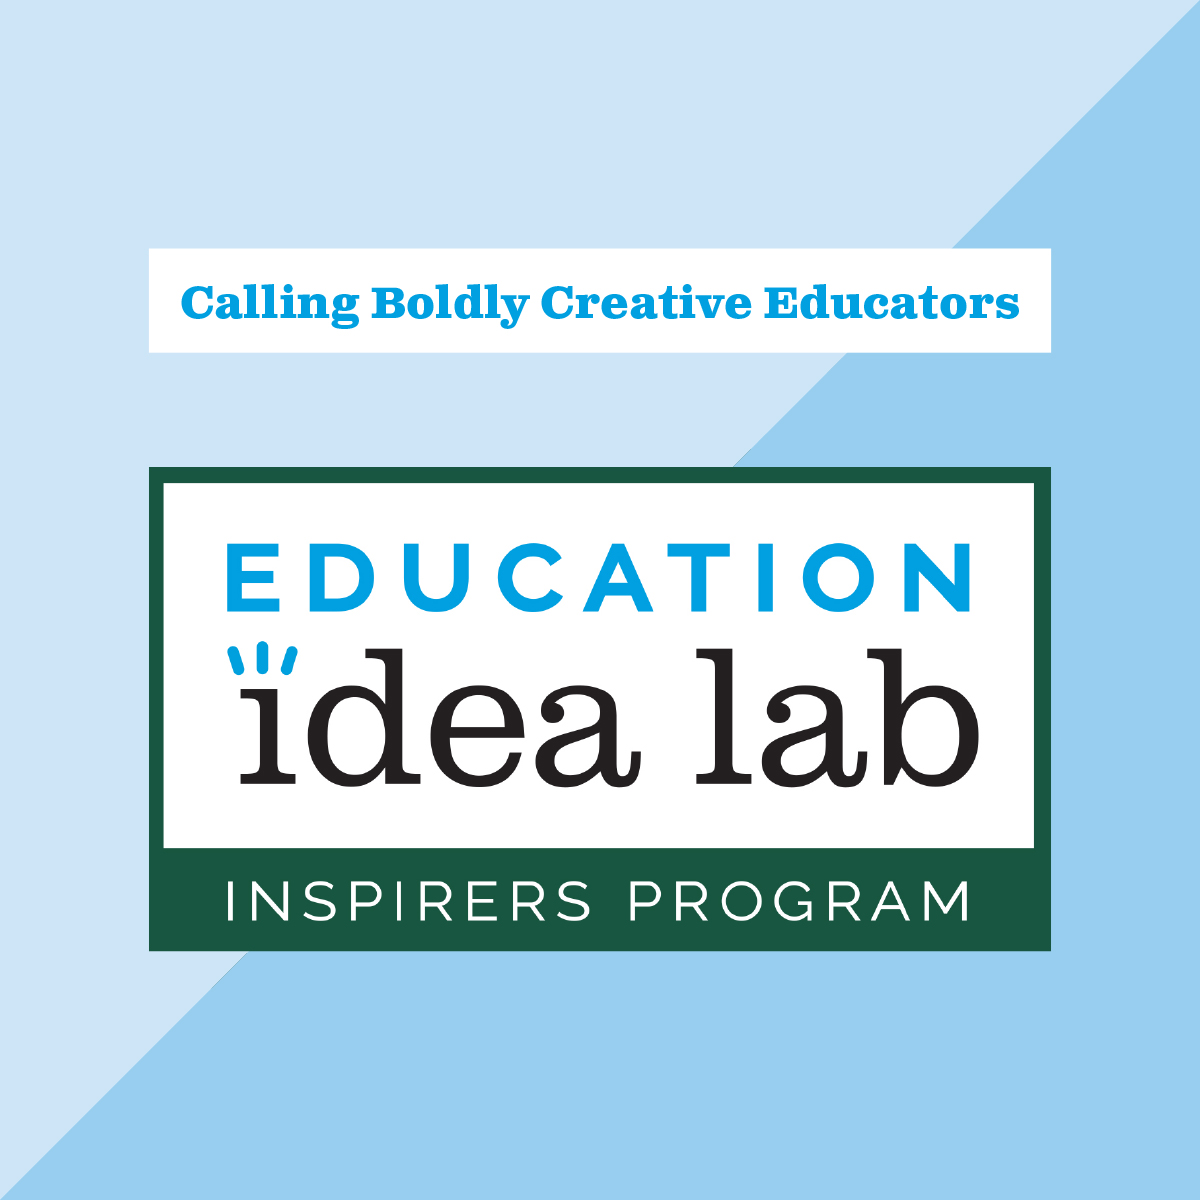 Announcing the Education Idea Lab's Inspirers Program: an opportunity for educators to learn from experienced mentors @WendyOstroff @Ulcca @balancedteacher, and for all of us to learn from and be inspired by educators on their journeys. https://t.co/draIHMhsQq https://t.co/mQyNPQhOFT